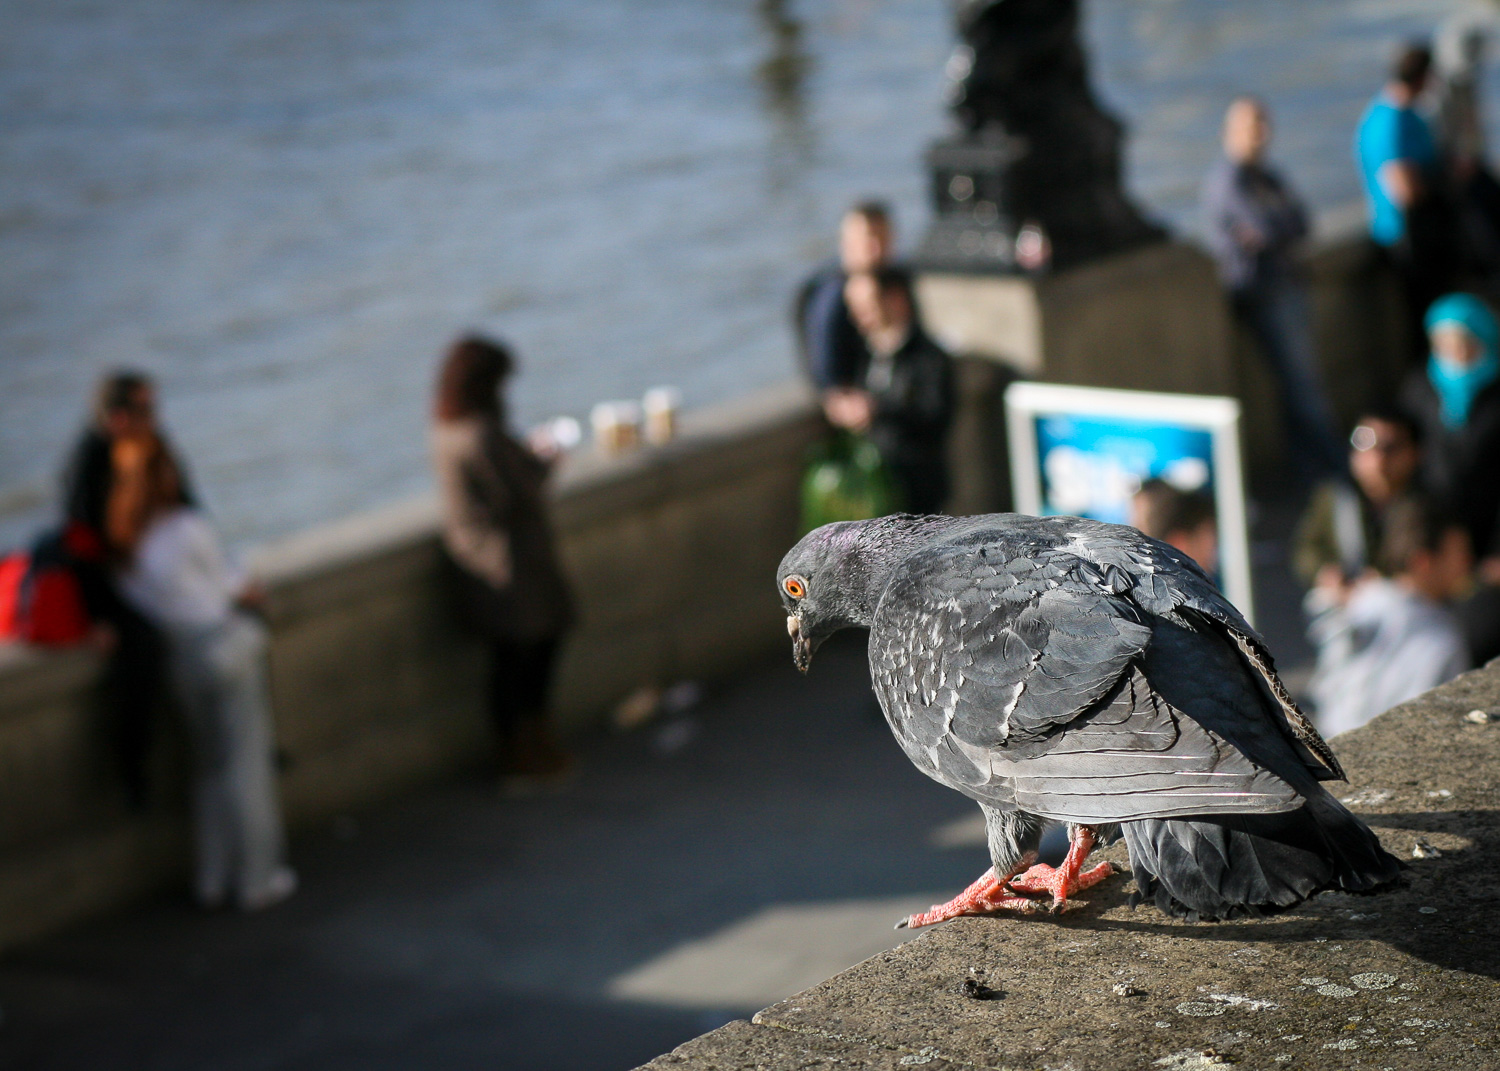 A Photograph Showing A Pigeon Perched Looking Down On Passers-by On The South Bank, London.